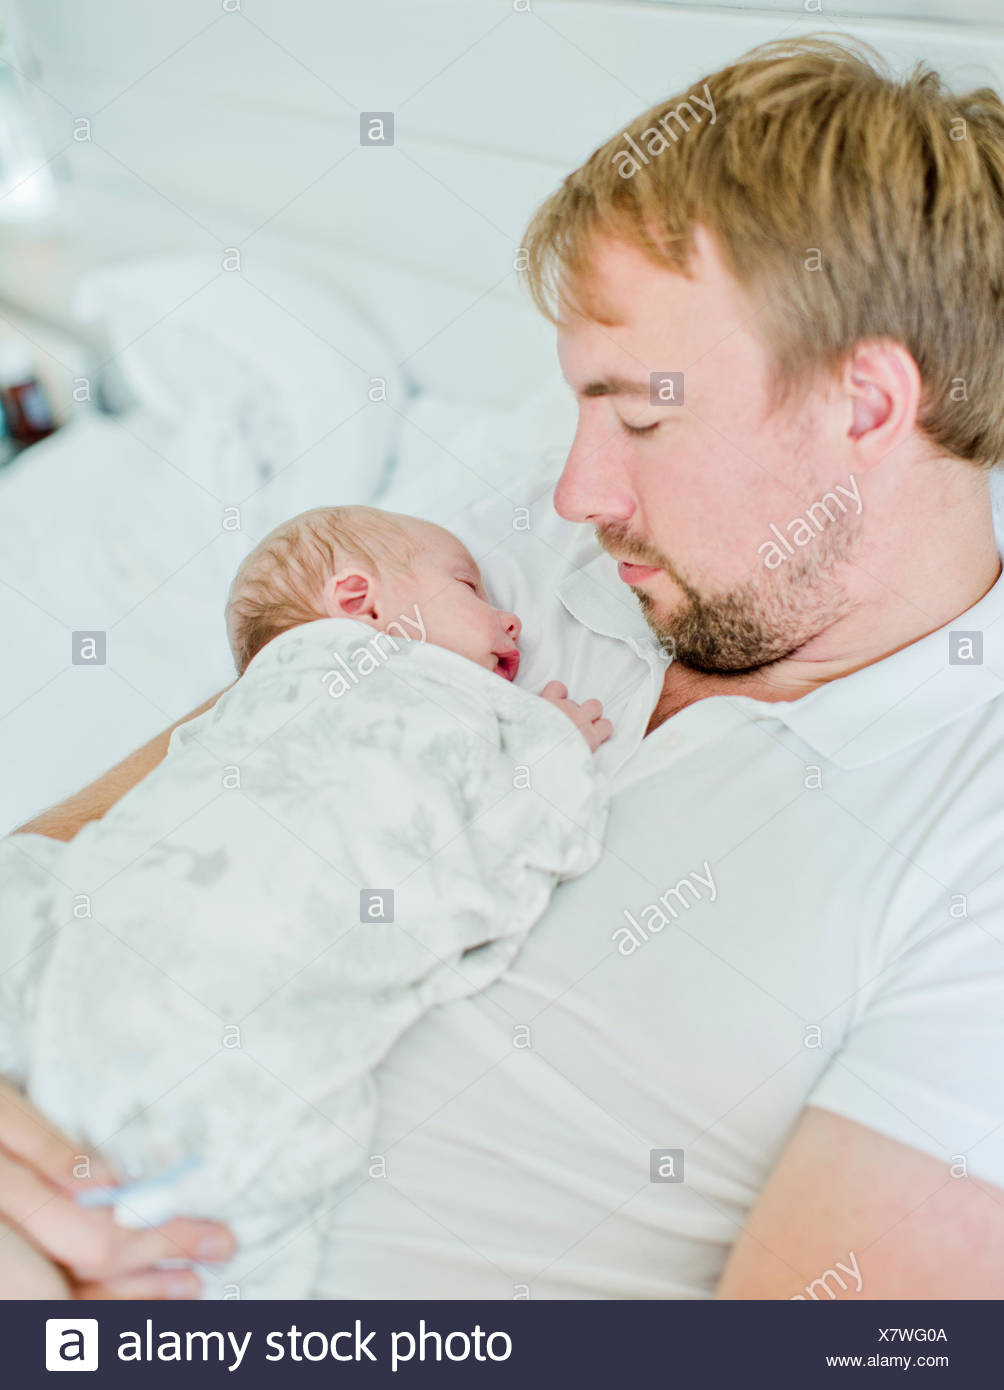 Mid-adult man holding baby boy (0-1 months) in his arms - Stock Image